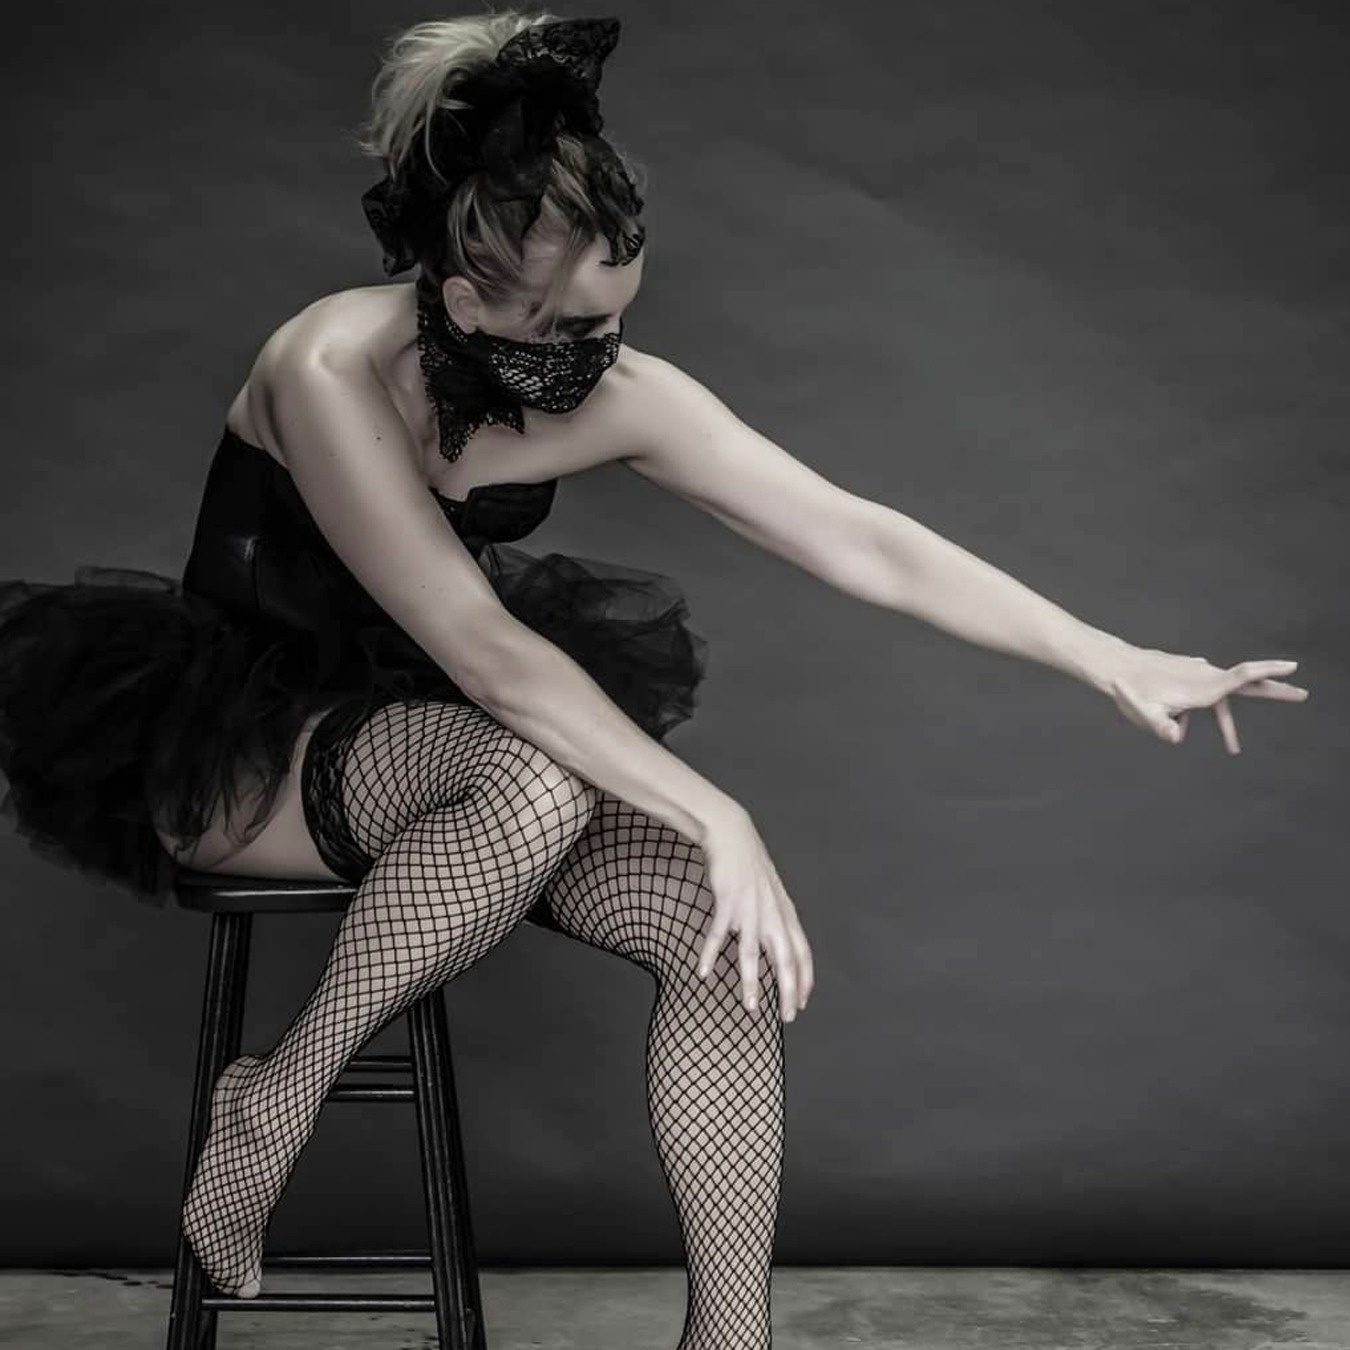 Ballerina sitting on a high chair with her left foot on the ground, wearing a black tutu skirt with black corsage; covering her mouth with a screened scarf and looking likes she is trying to reach something on the ground